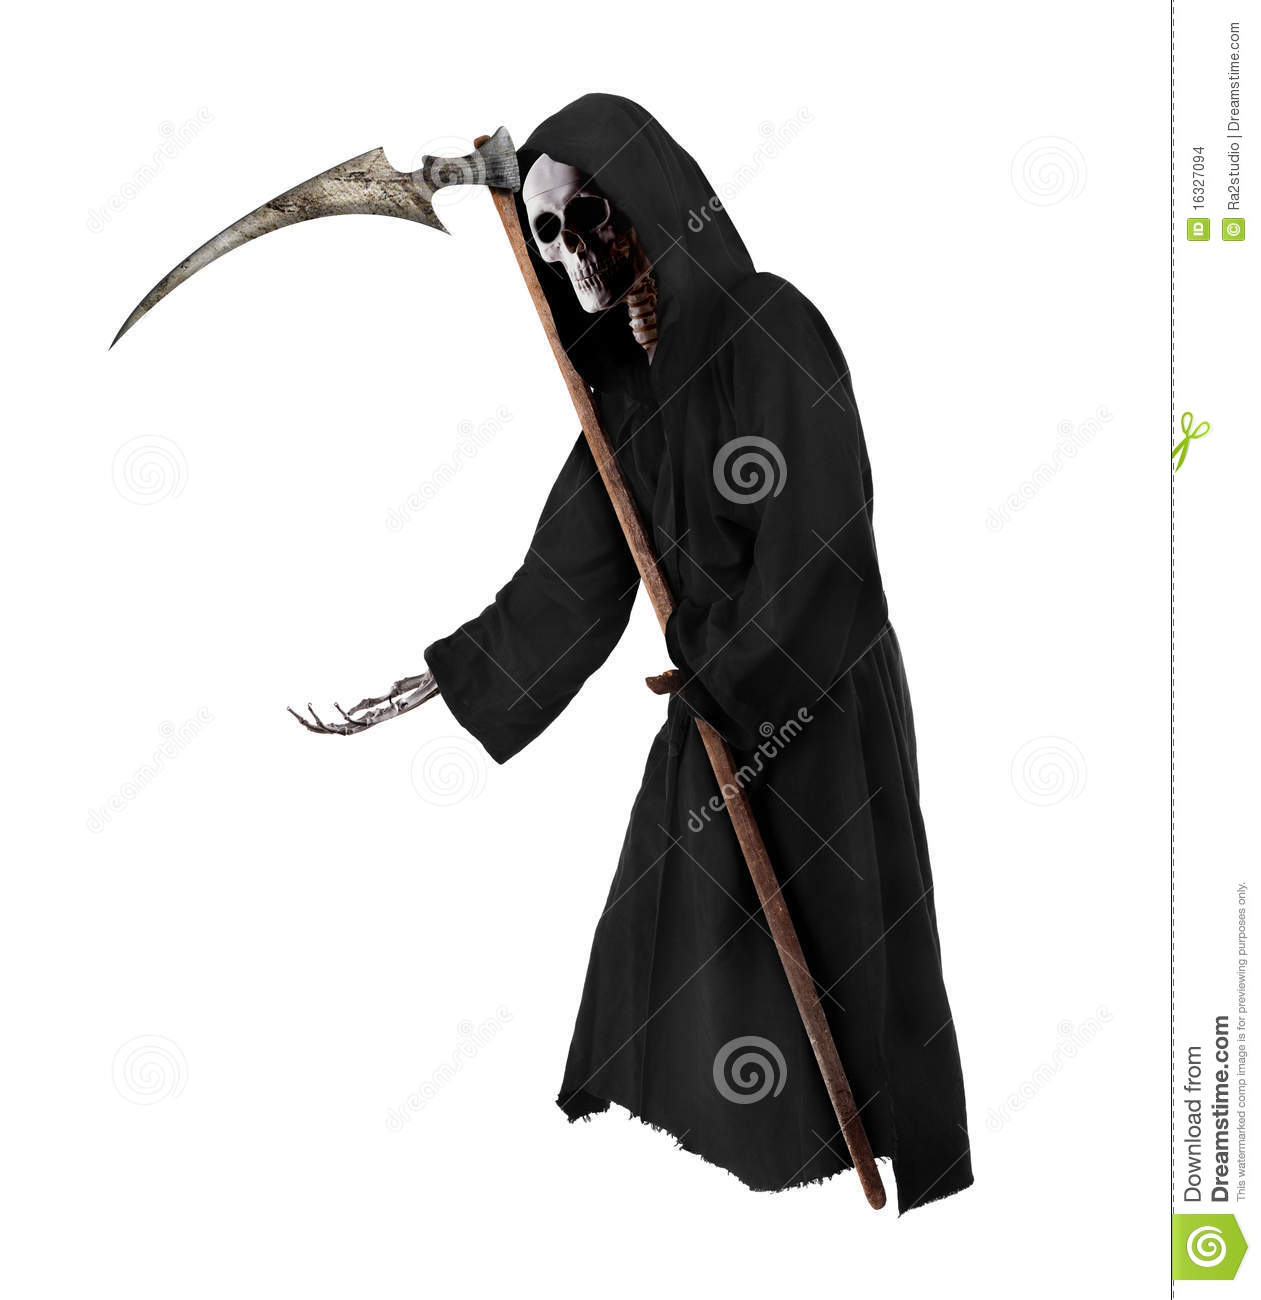 Grim Reaper Stock Images - Image: 16327094